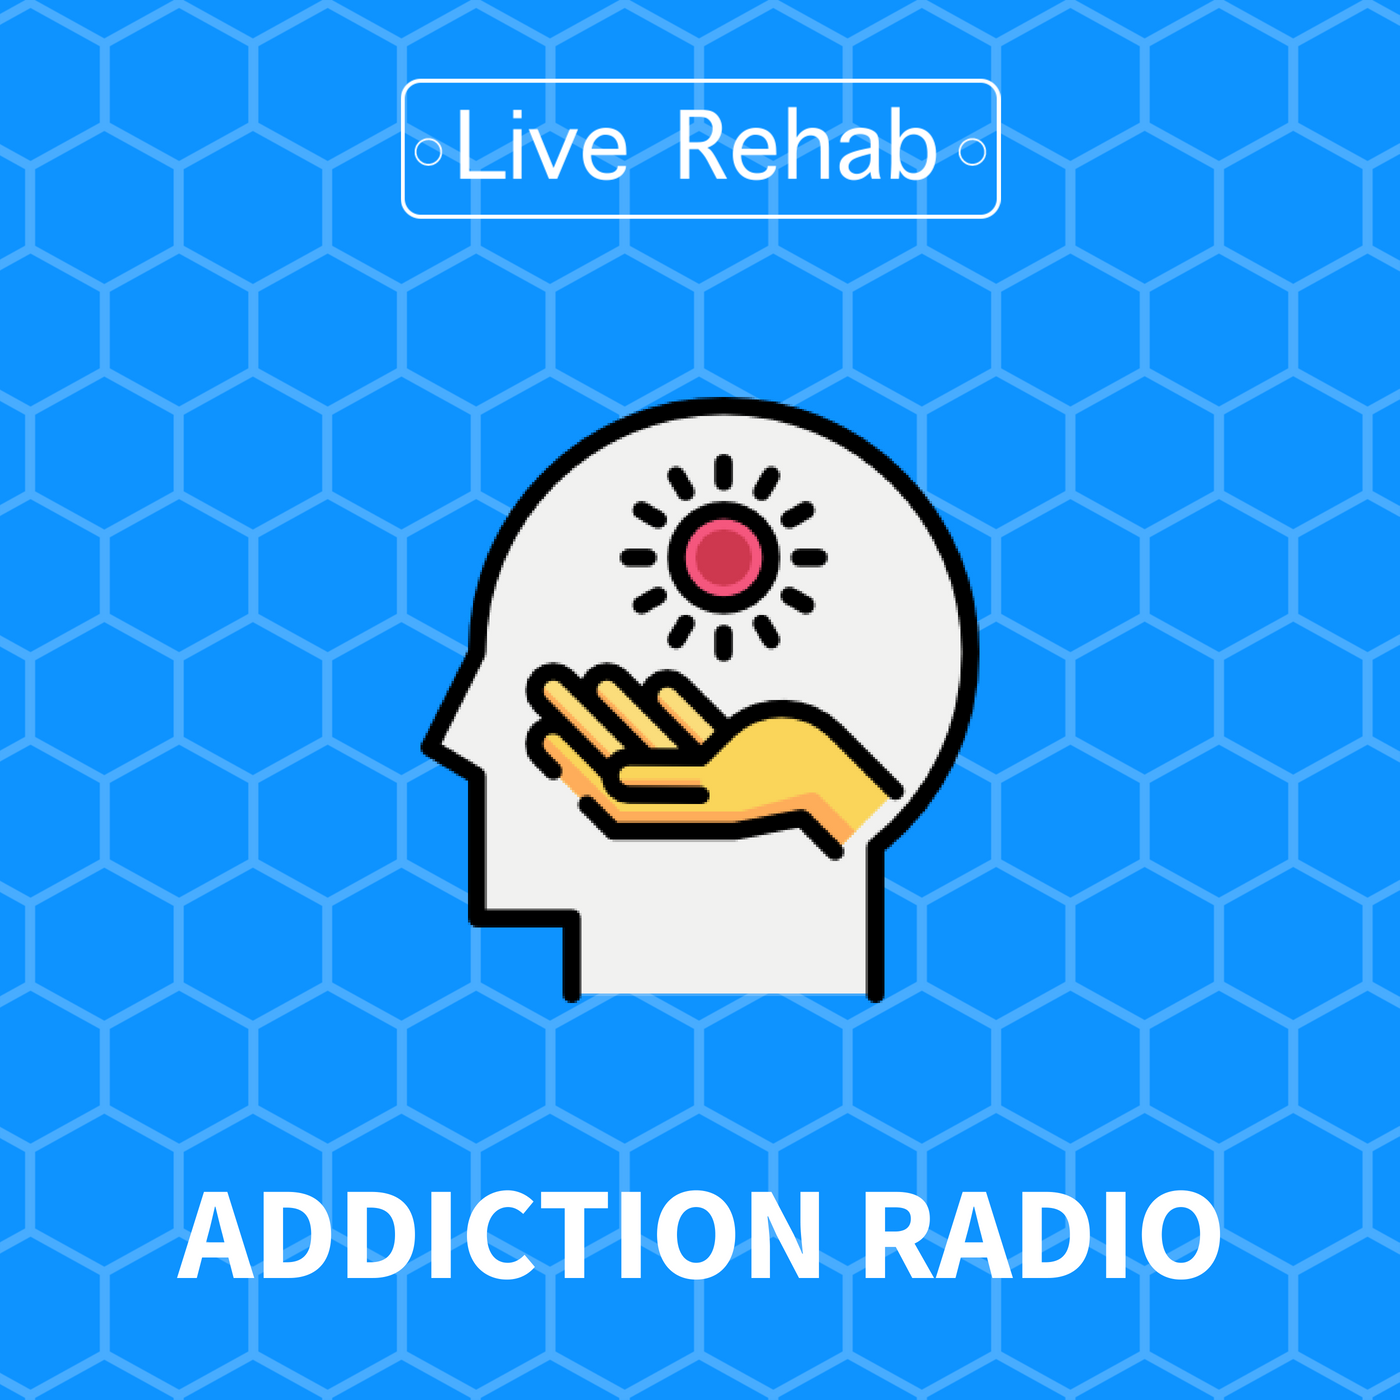 Live Rehab Addiction Radio